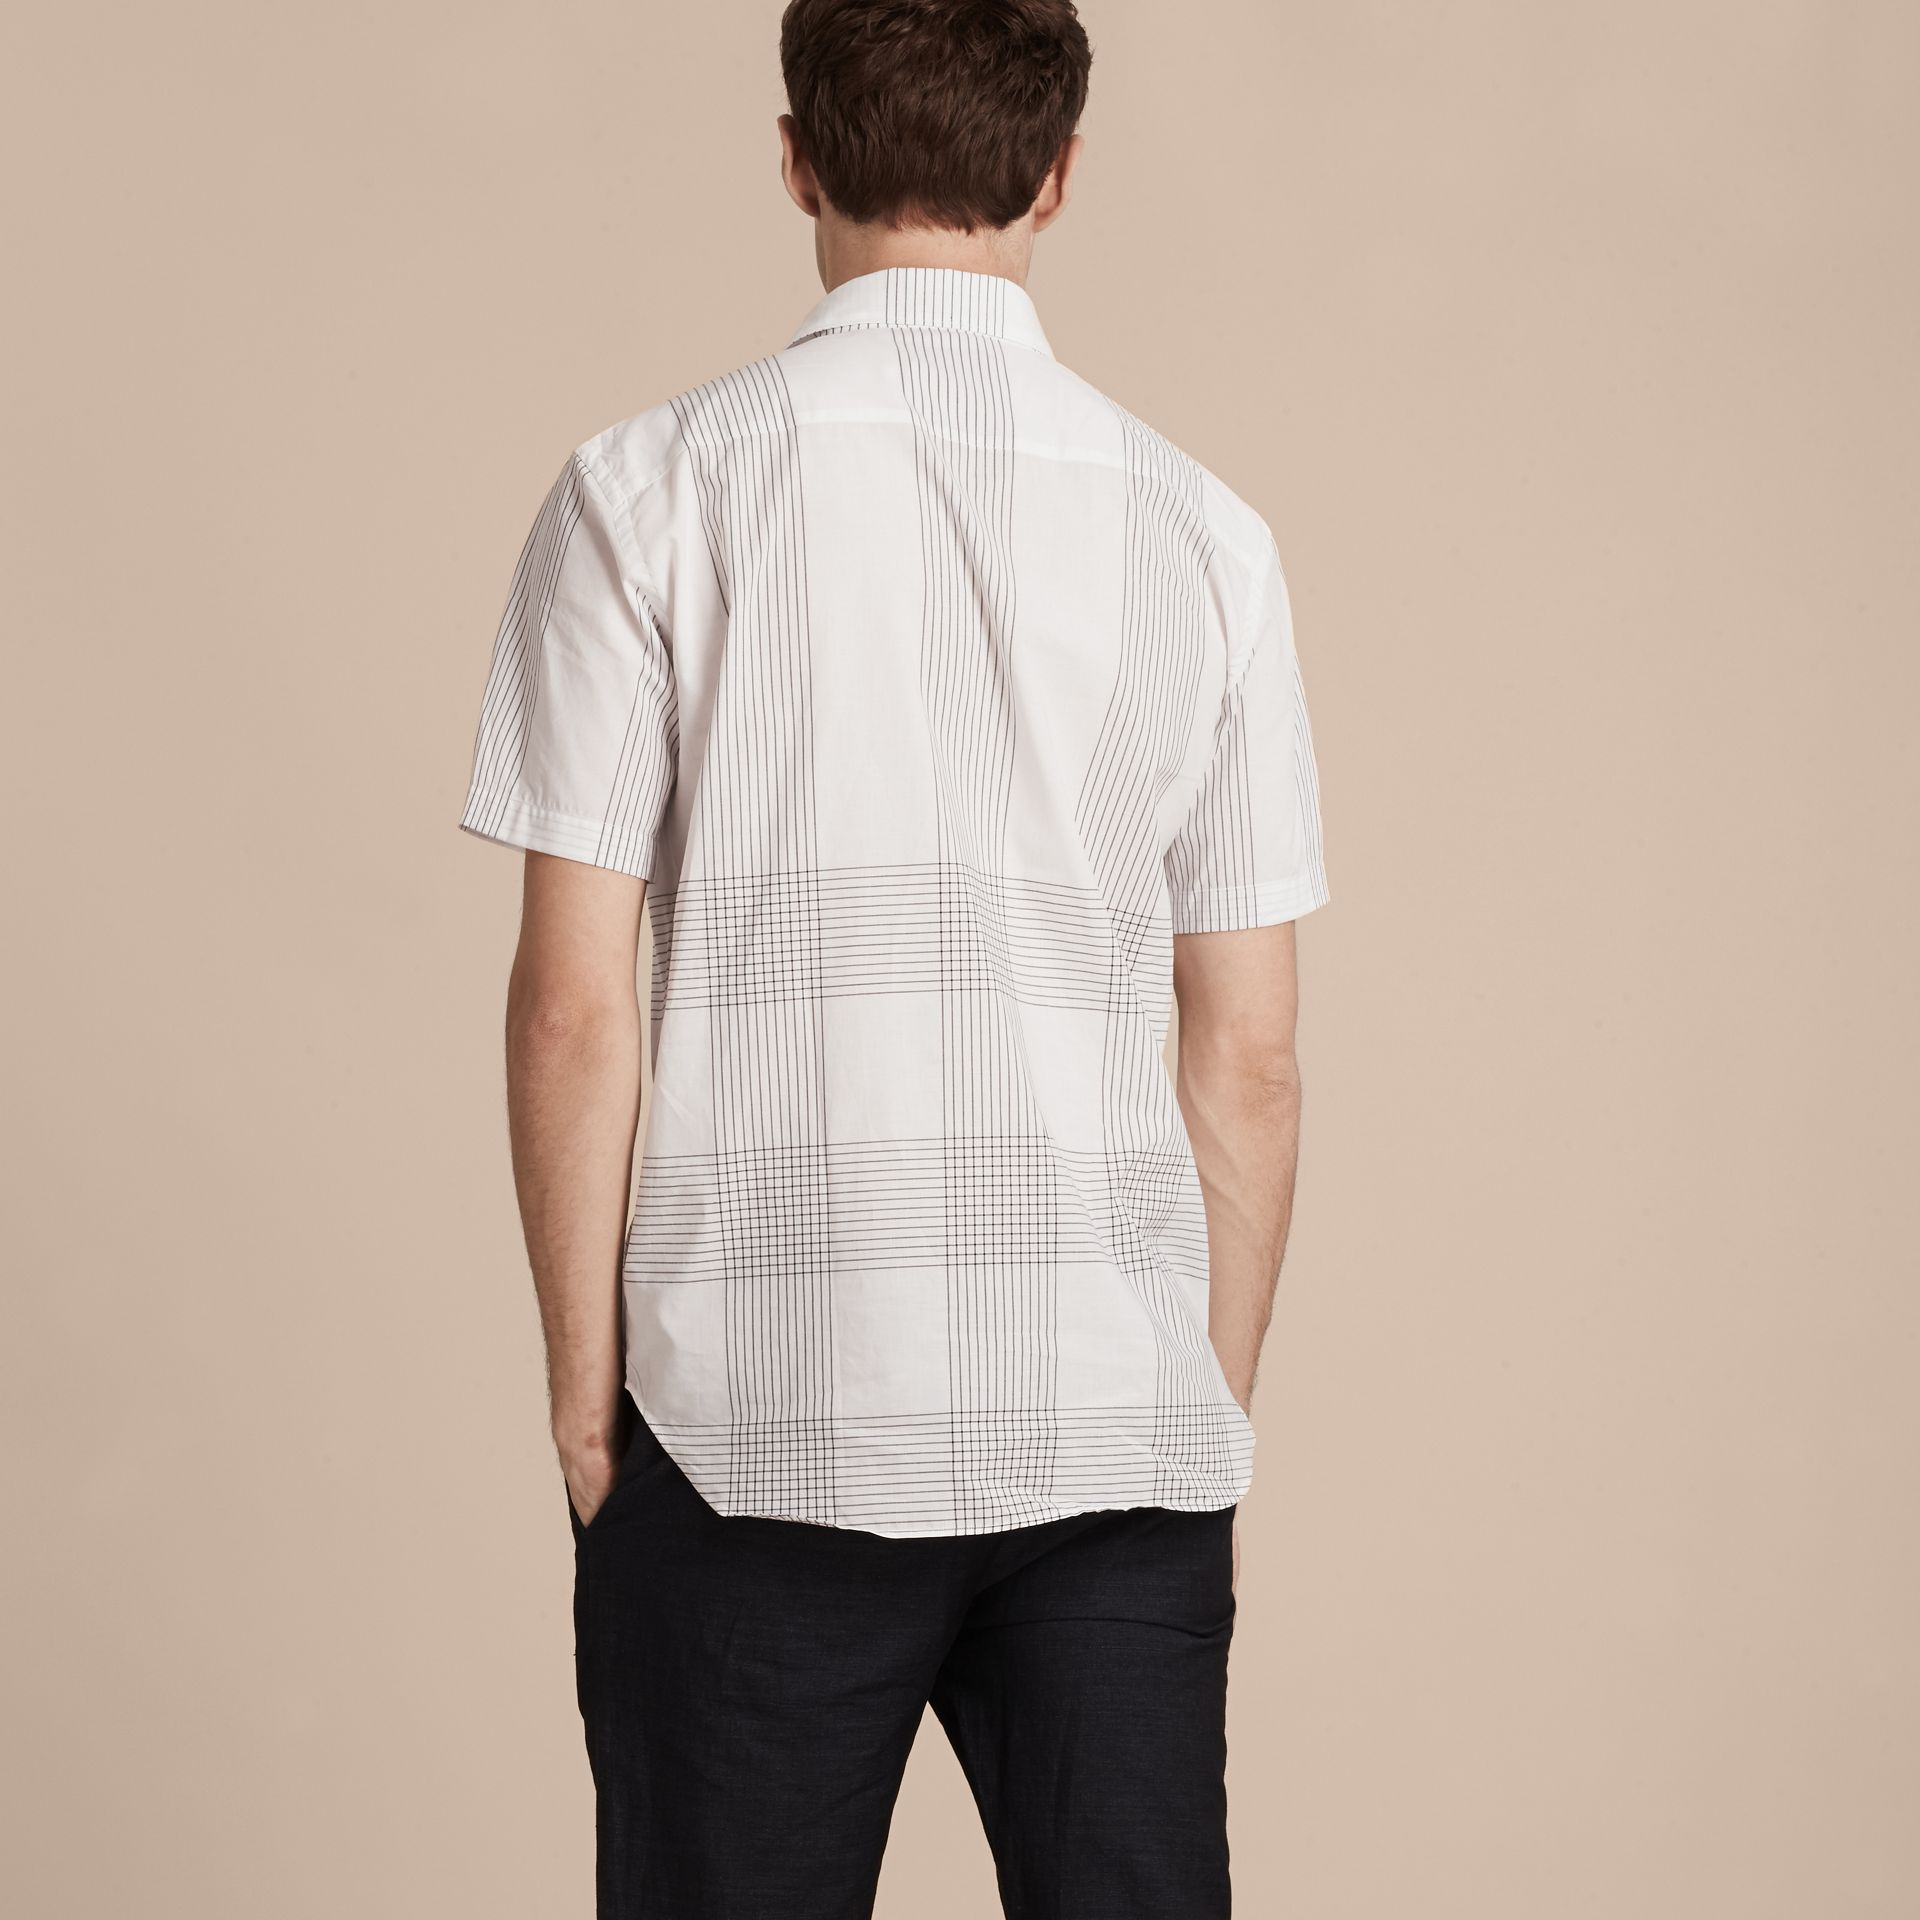 White Short-sleeved Check Cotton Shirt White - gallery image 3